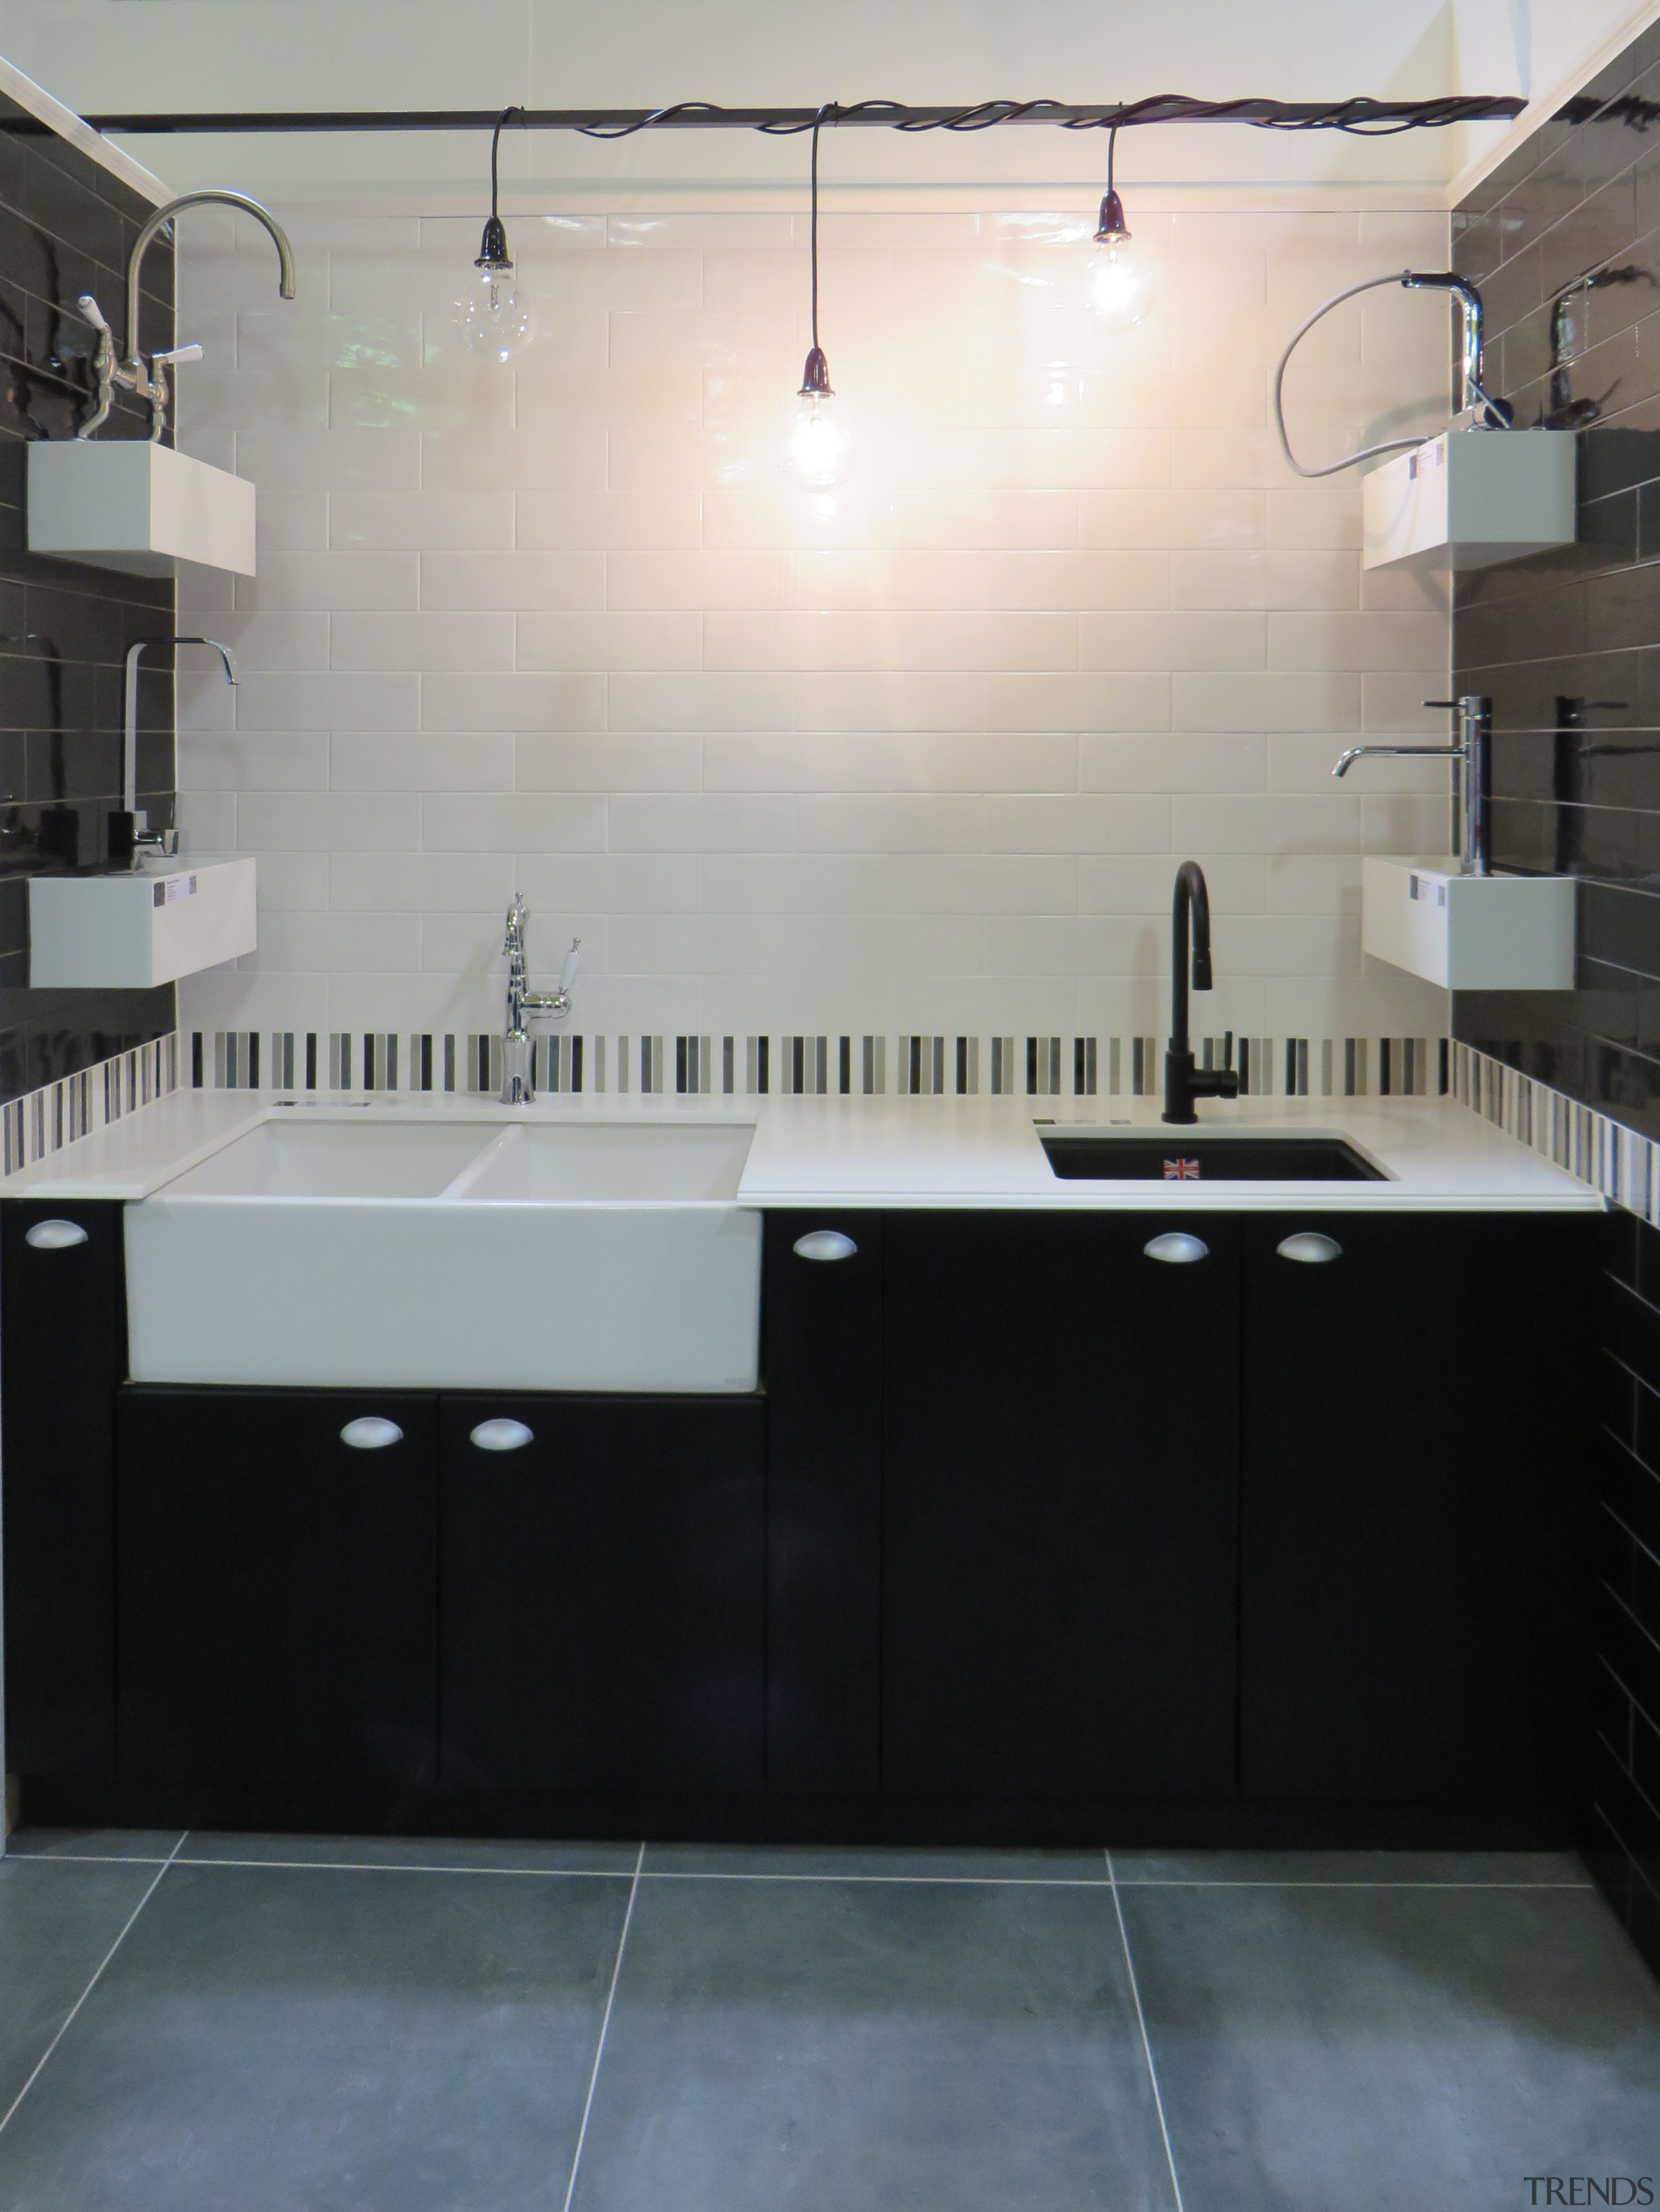 The displays encourage visitors to try out the bathroom, cabinetry, countertop, floor, flooring, glass, interior design, kitchen, property, sink, tile, gray, black